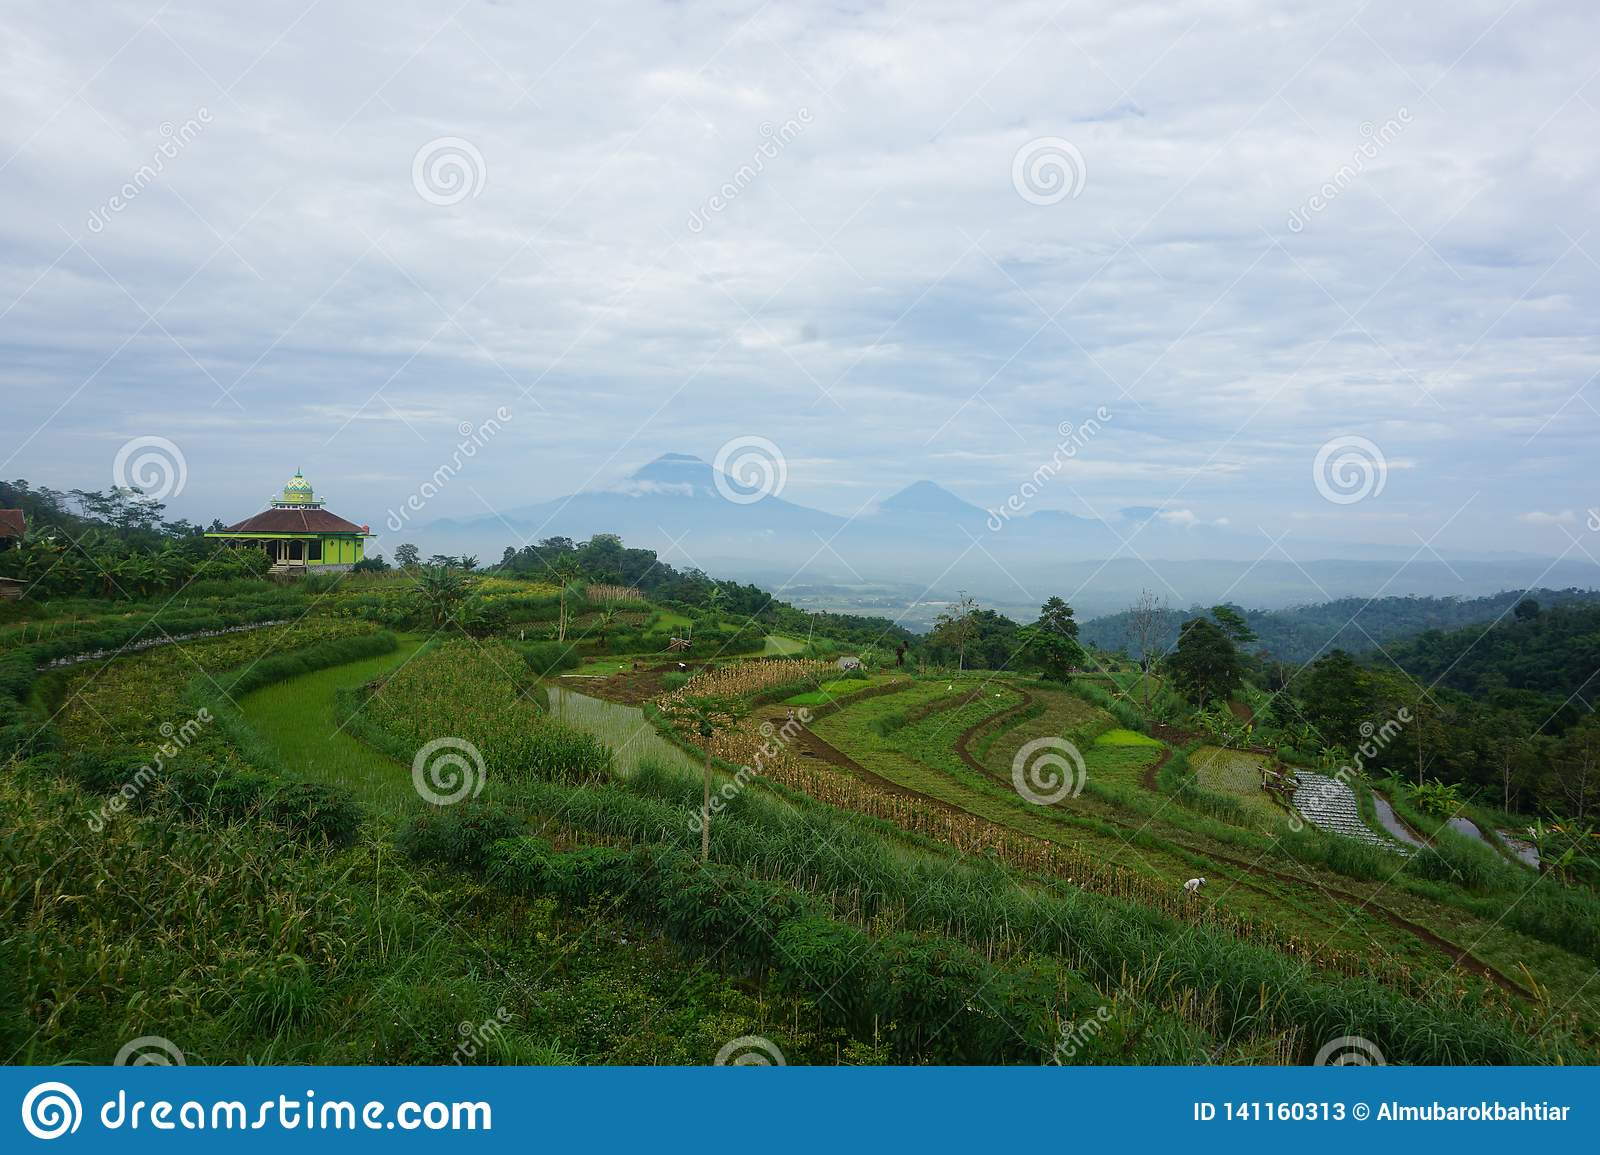 views of green rice fields on the hill